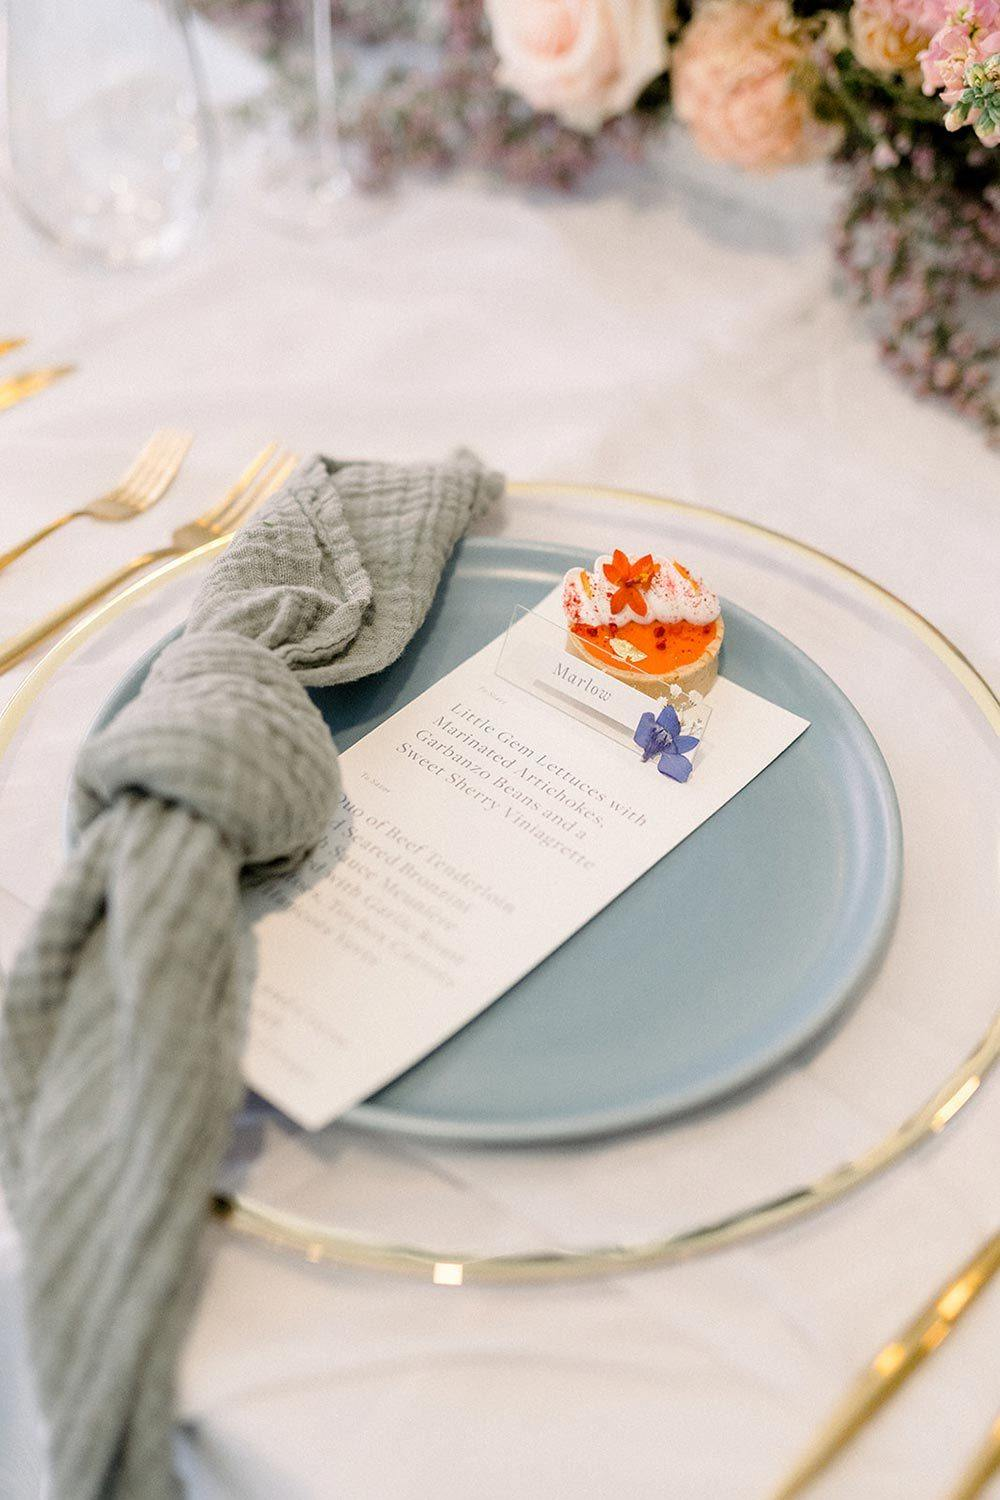 pale blue wedding place setting with cloth napkin and edible favor